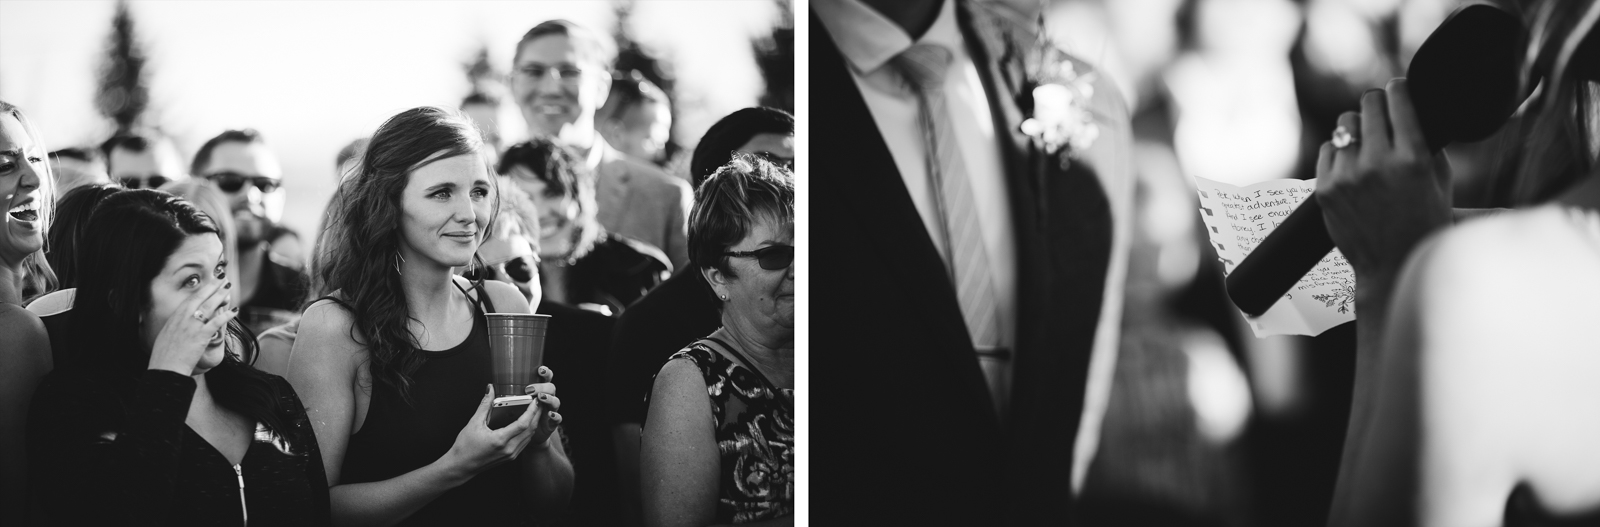 53-willow_and_wolf_photography_stef_and_pete_canmore_wedding_blog